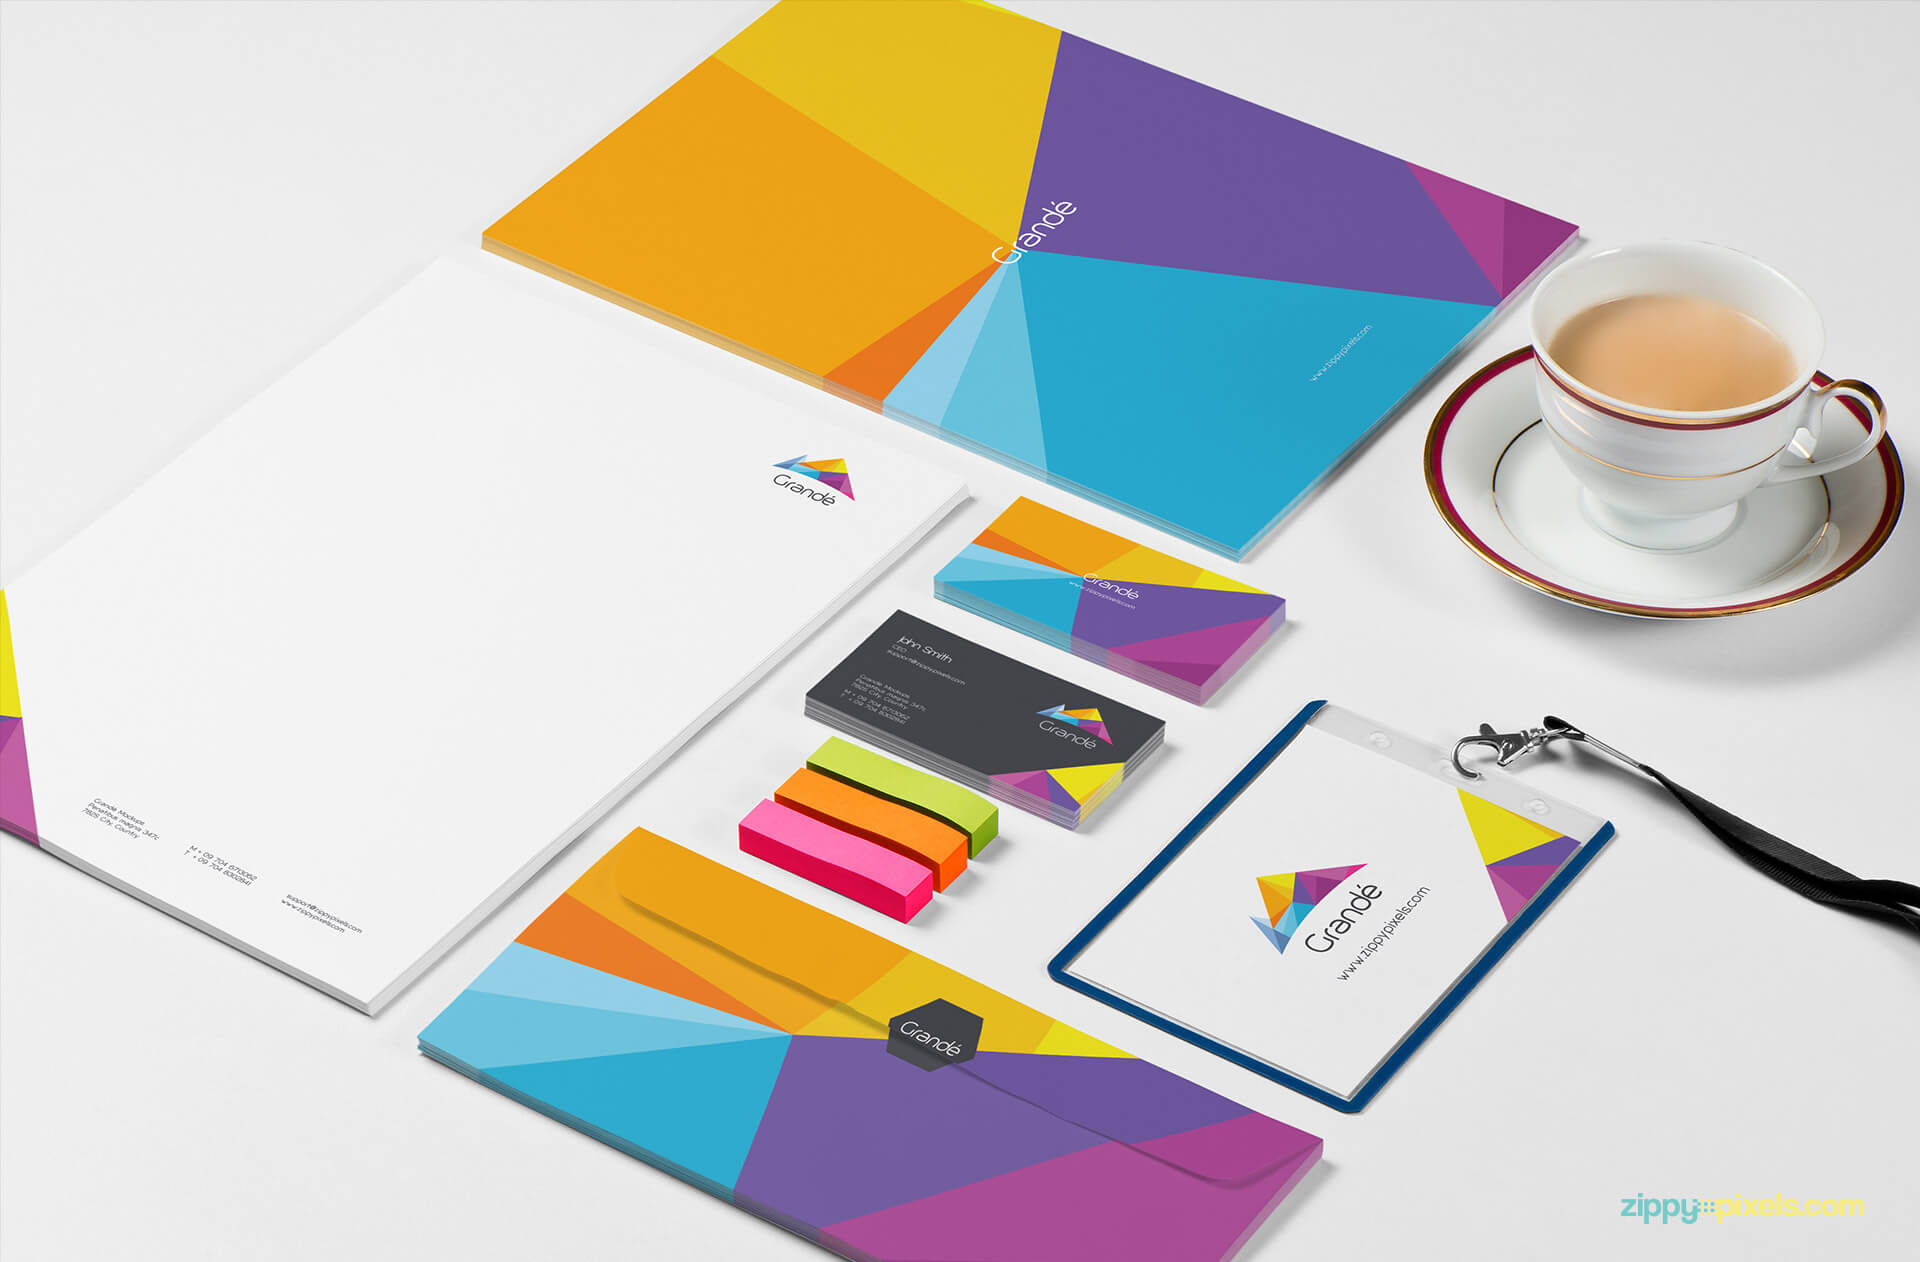 Stationery Branding Mokcup of Set of Letterheads, Business Cards, Envelopes, Id badge holder with Erasers & Tea Cup